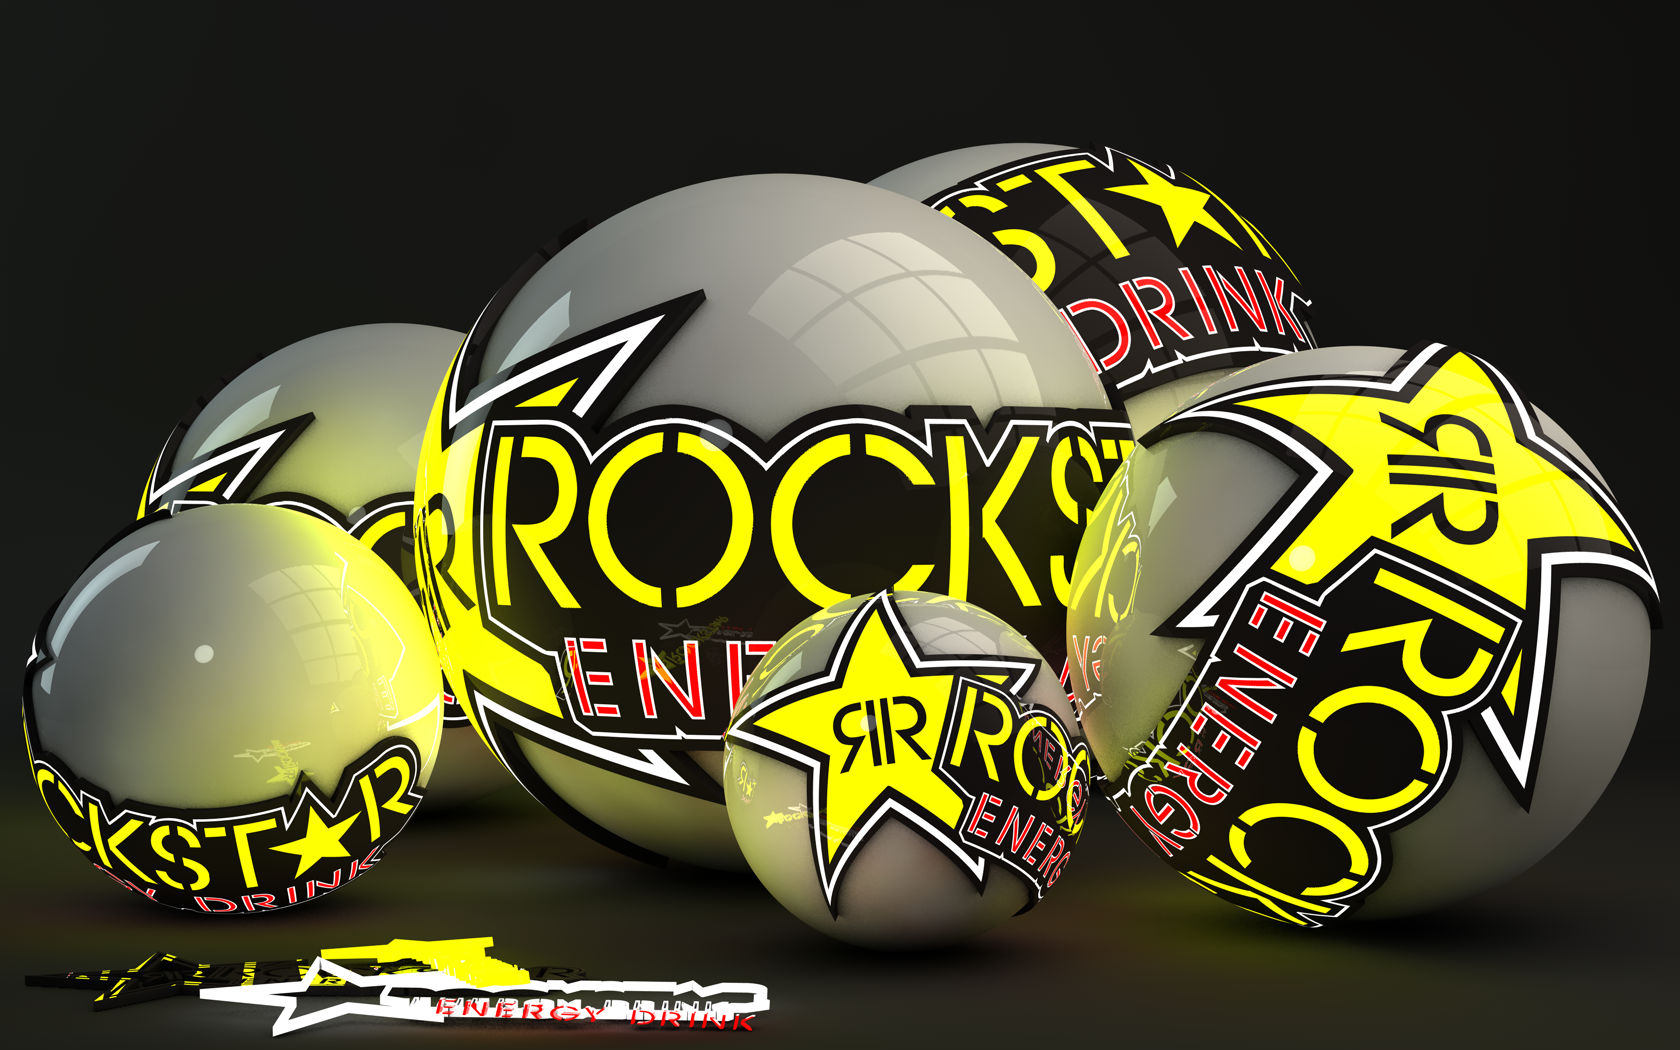 Rockstar Energy Drink Wallpaper 22 Desktop Background Wallpaper 1680x1050